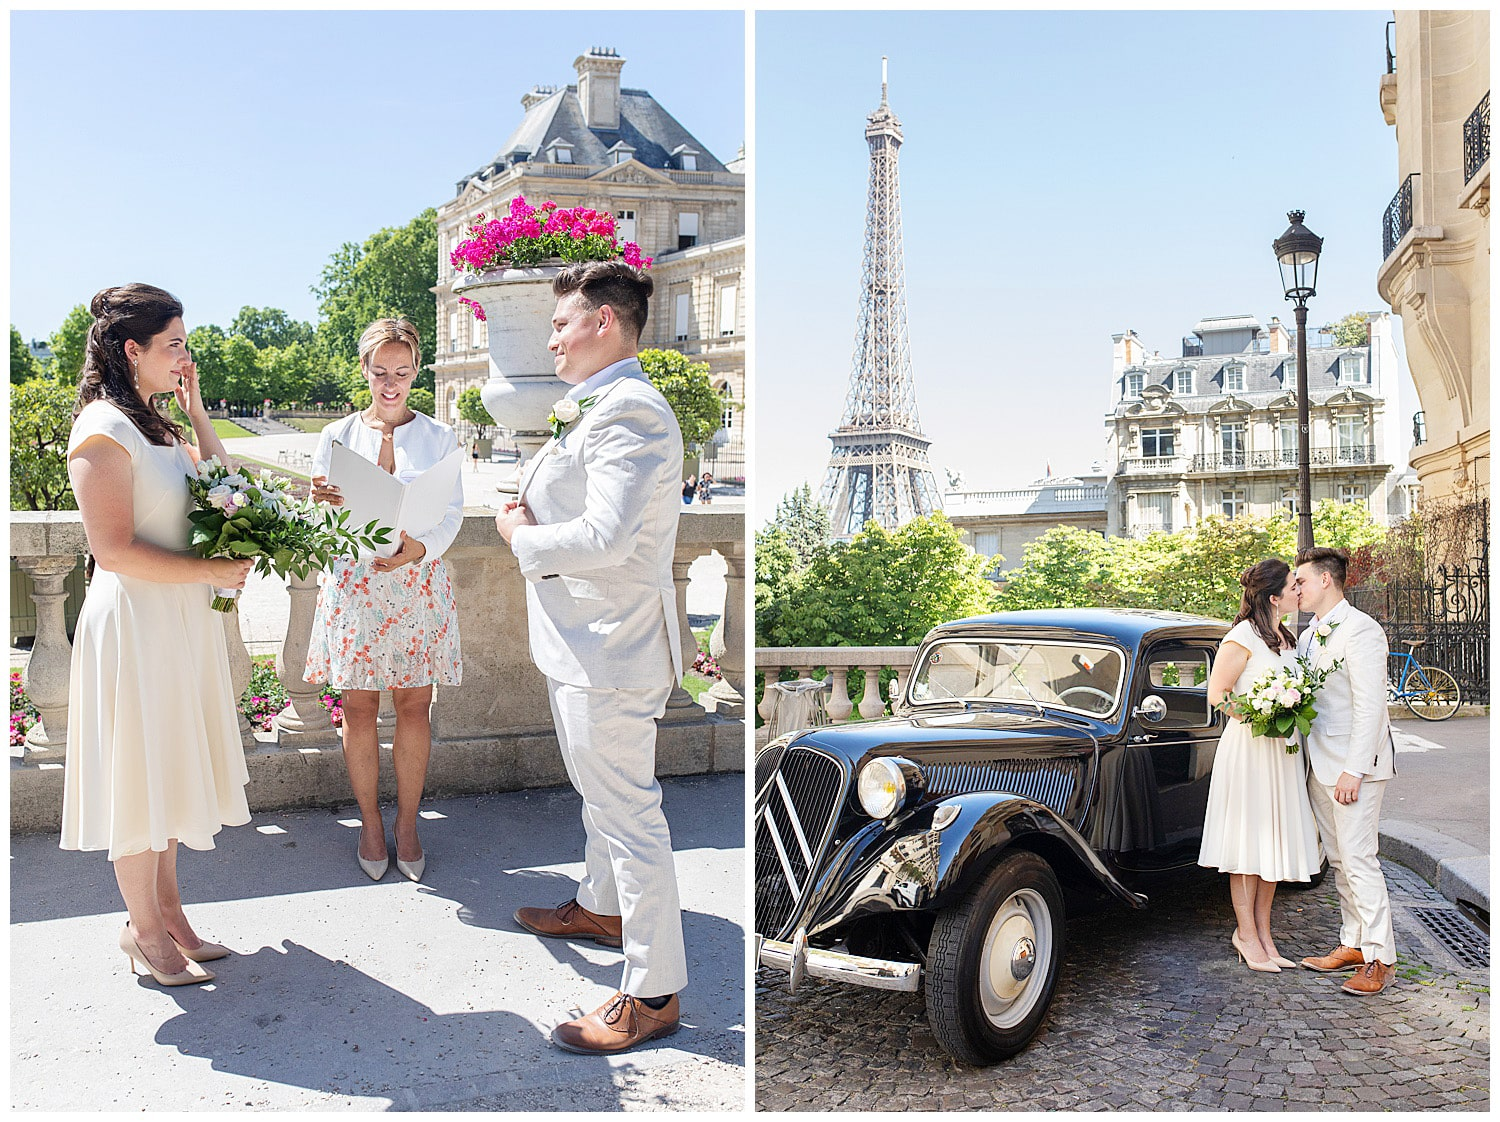 Marie-Calfopoulos-photographer-paris-provence-luberon-elopement-destination-wedding-luxembourg-gardens-eiffel-tower_0016